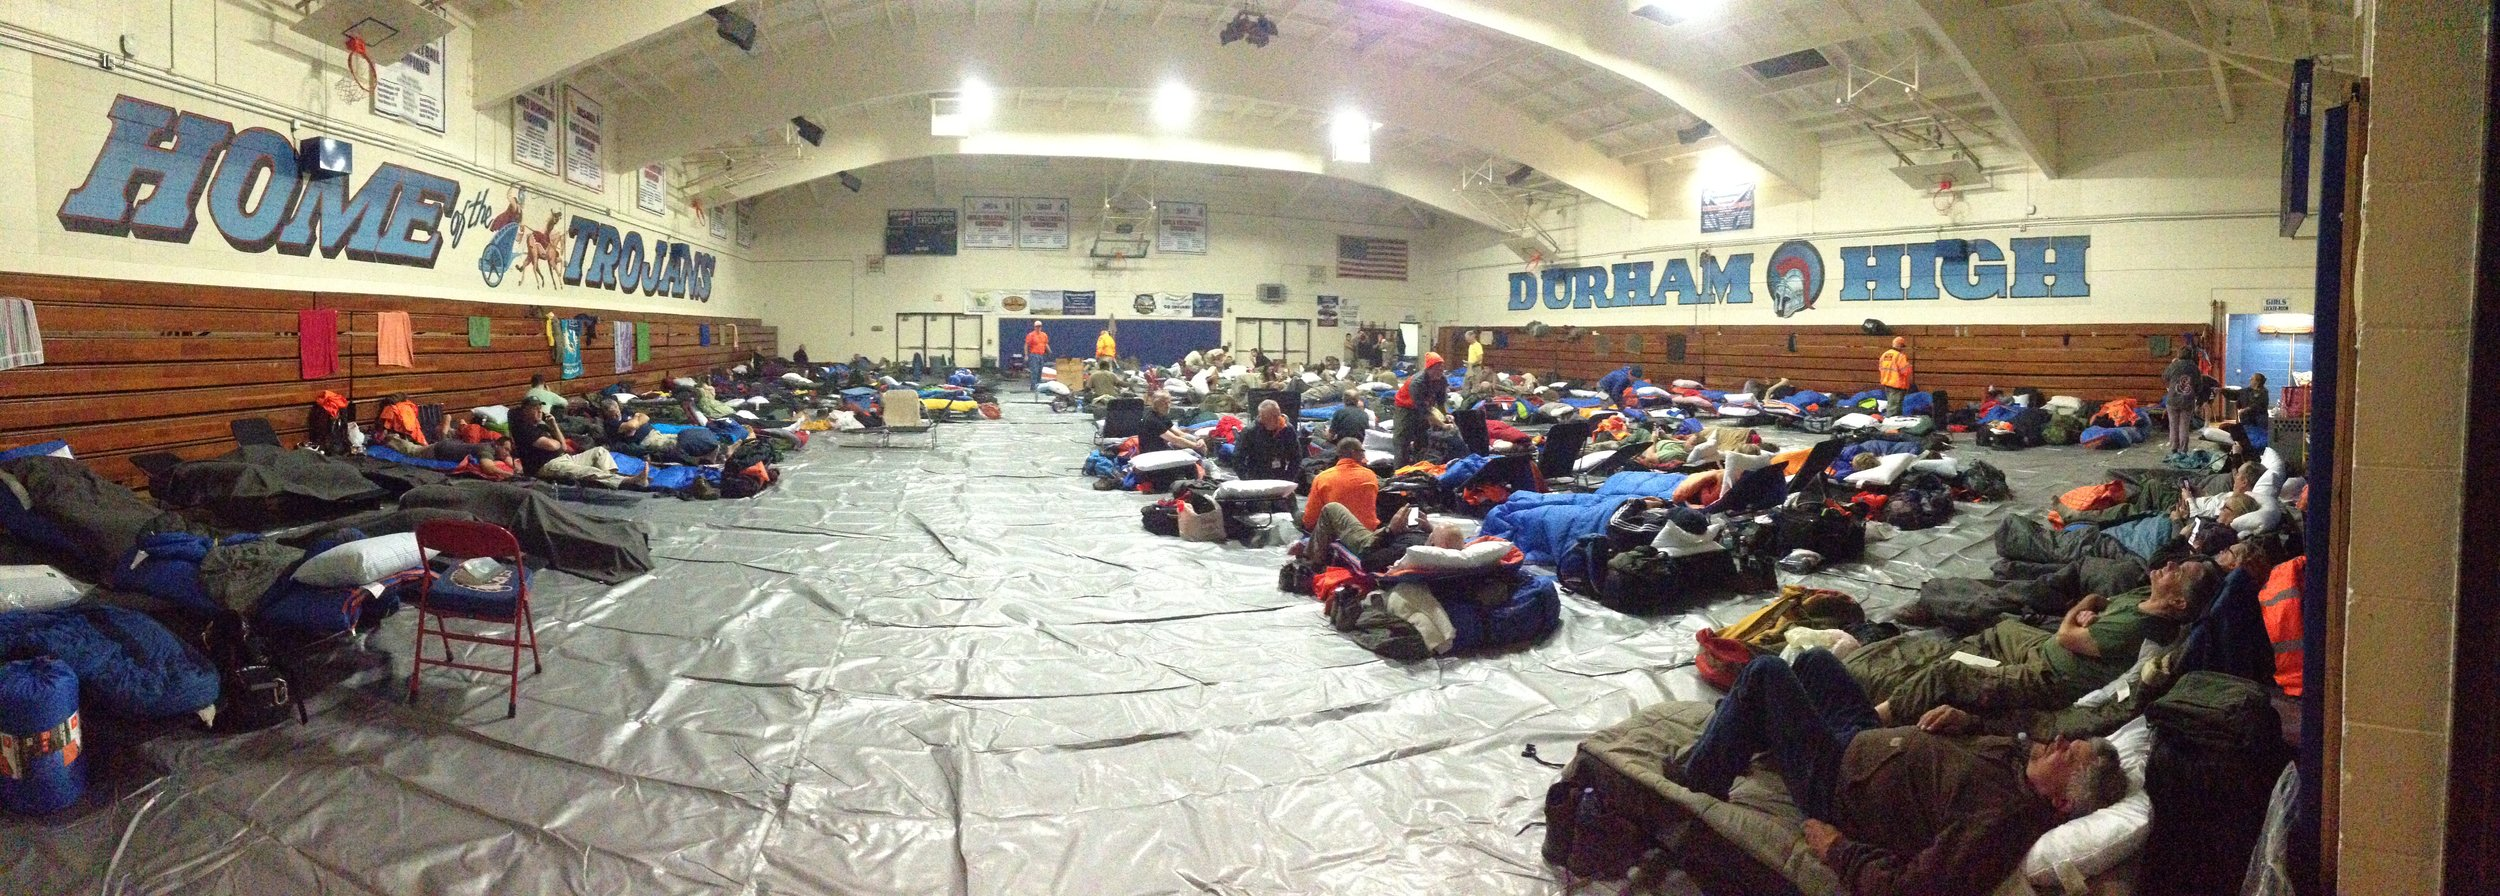 A room full of the most selfless people in California — Durham High School, CA — November, 12th, 2018 — iPhone panorama